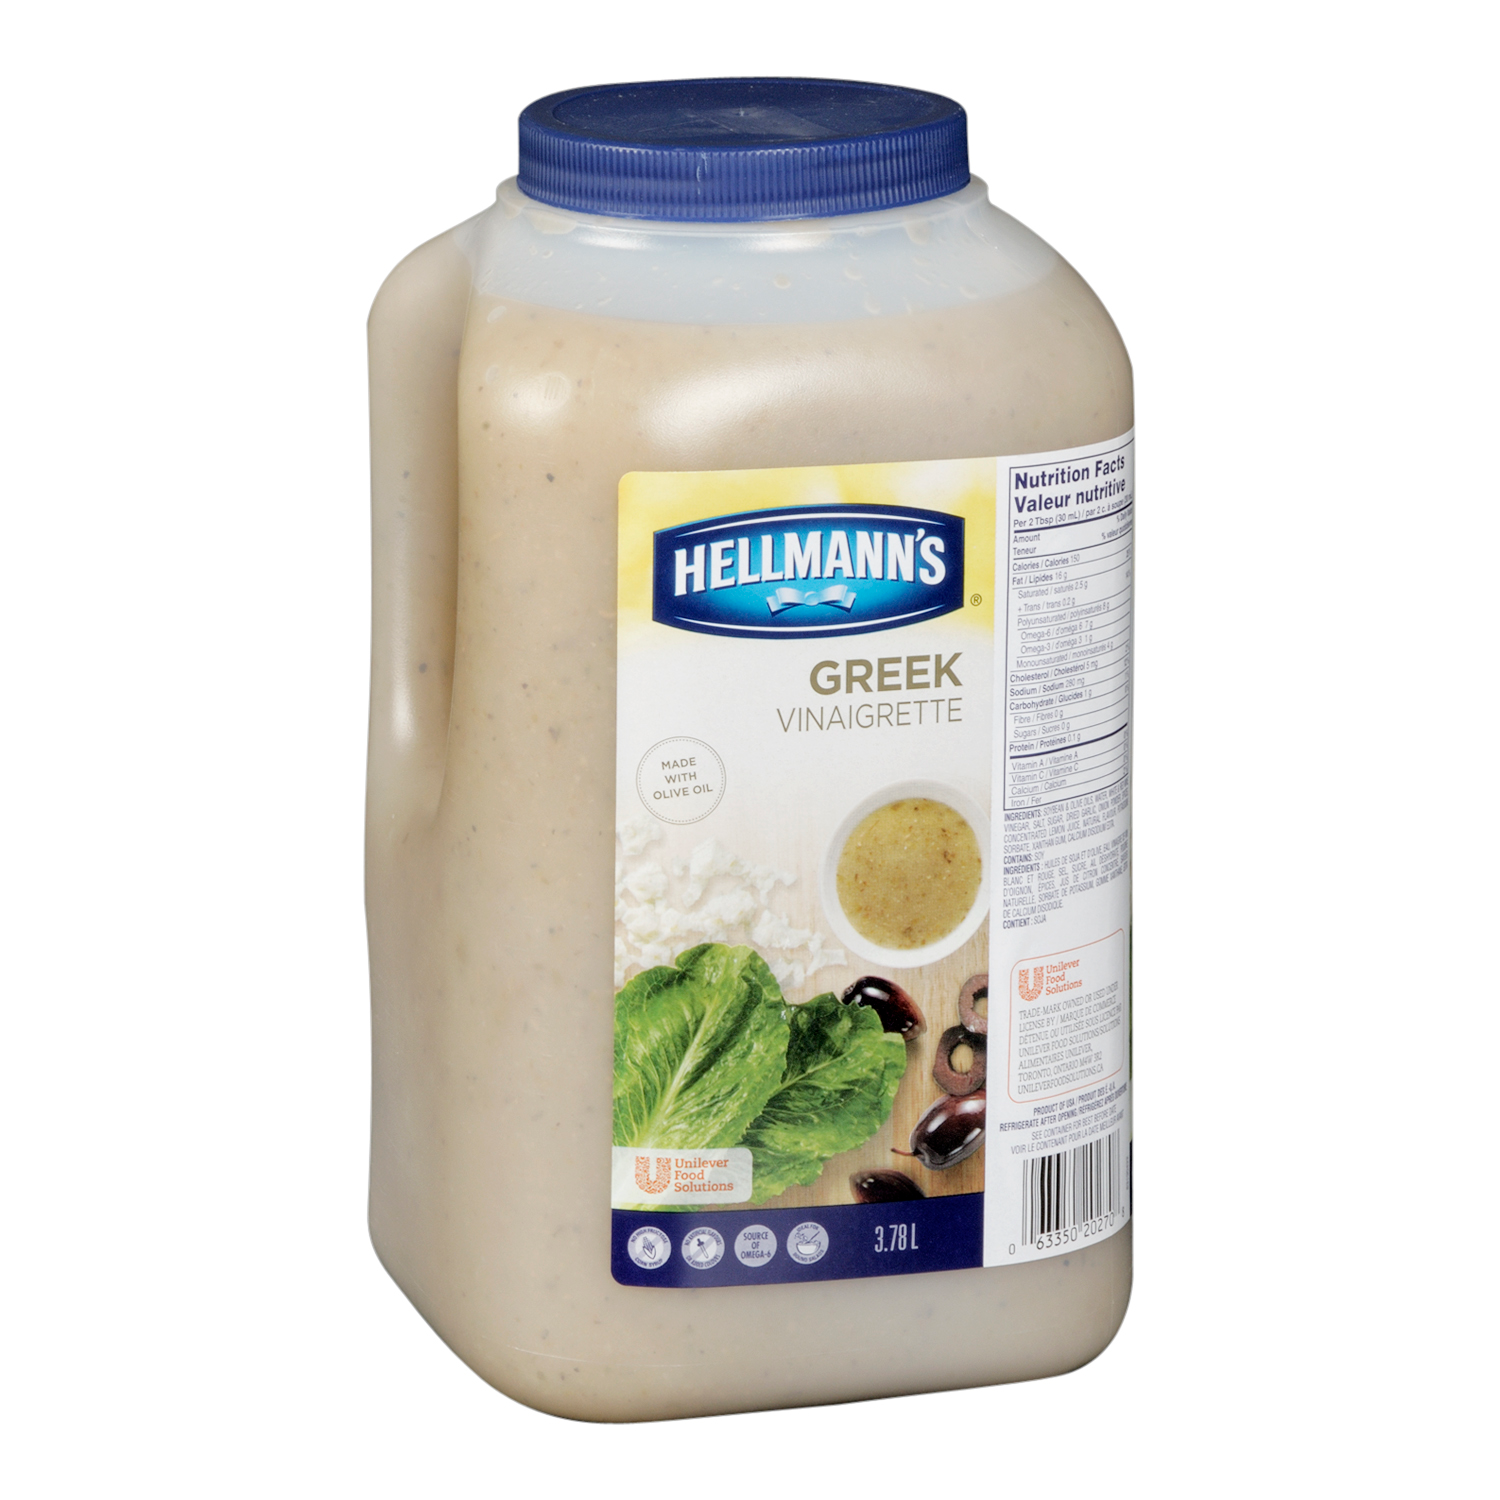 Hellmann's® Salad Dressing Jug Greek Vinaigrette 3.78 liters, pack of 2